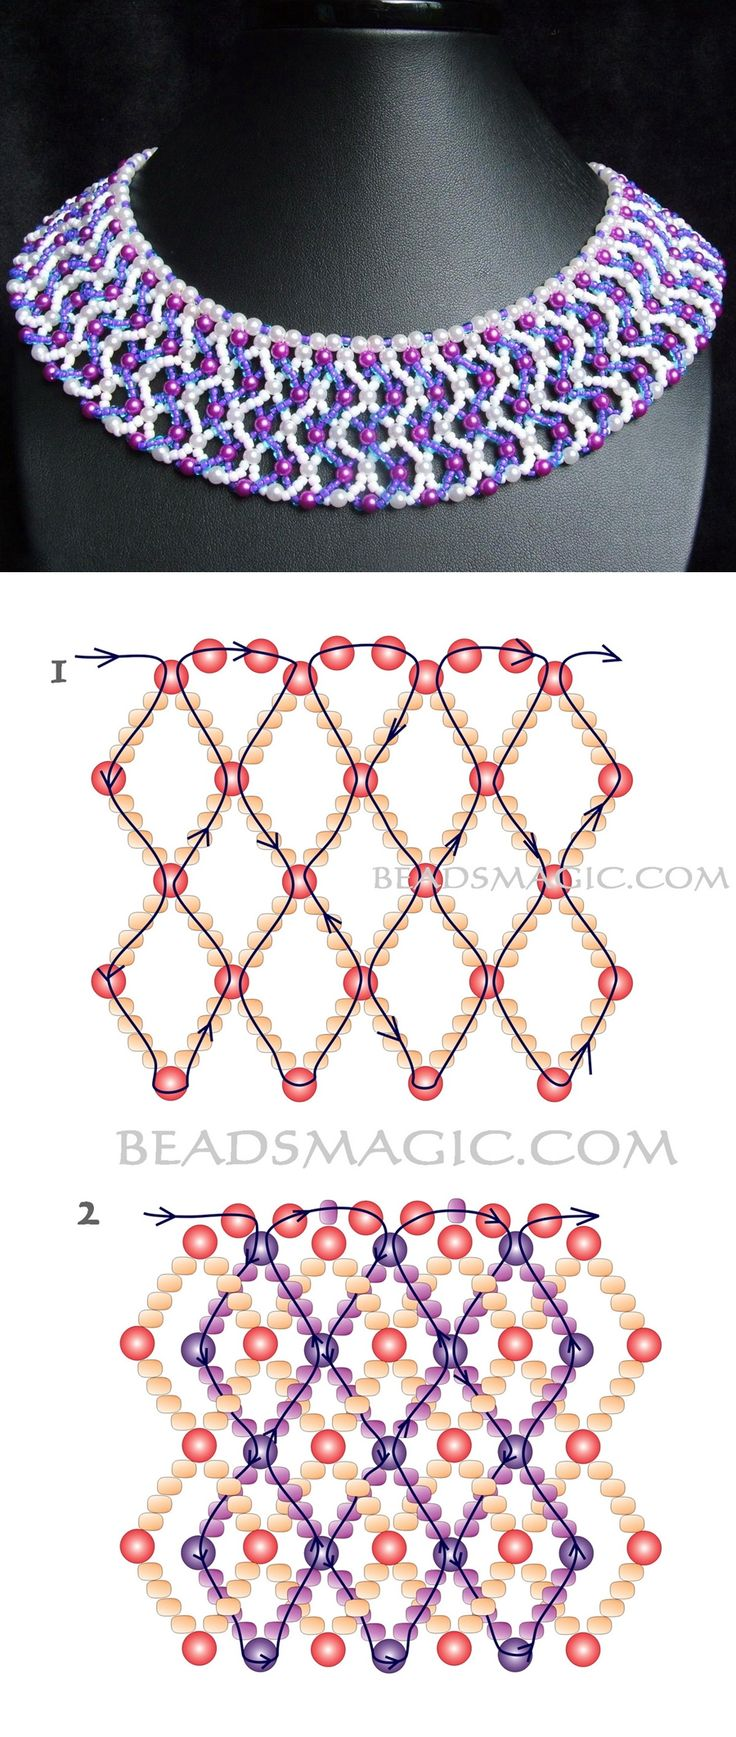 Free pattern for necklace Lia pearl beads 2-3 mm seed beads 11/0